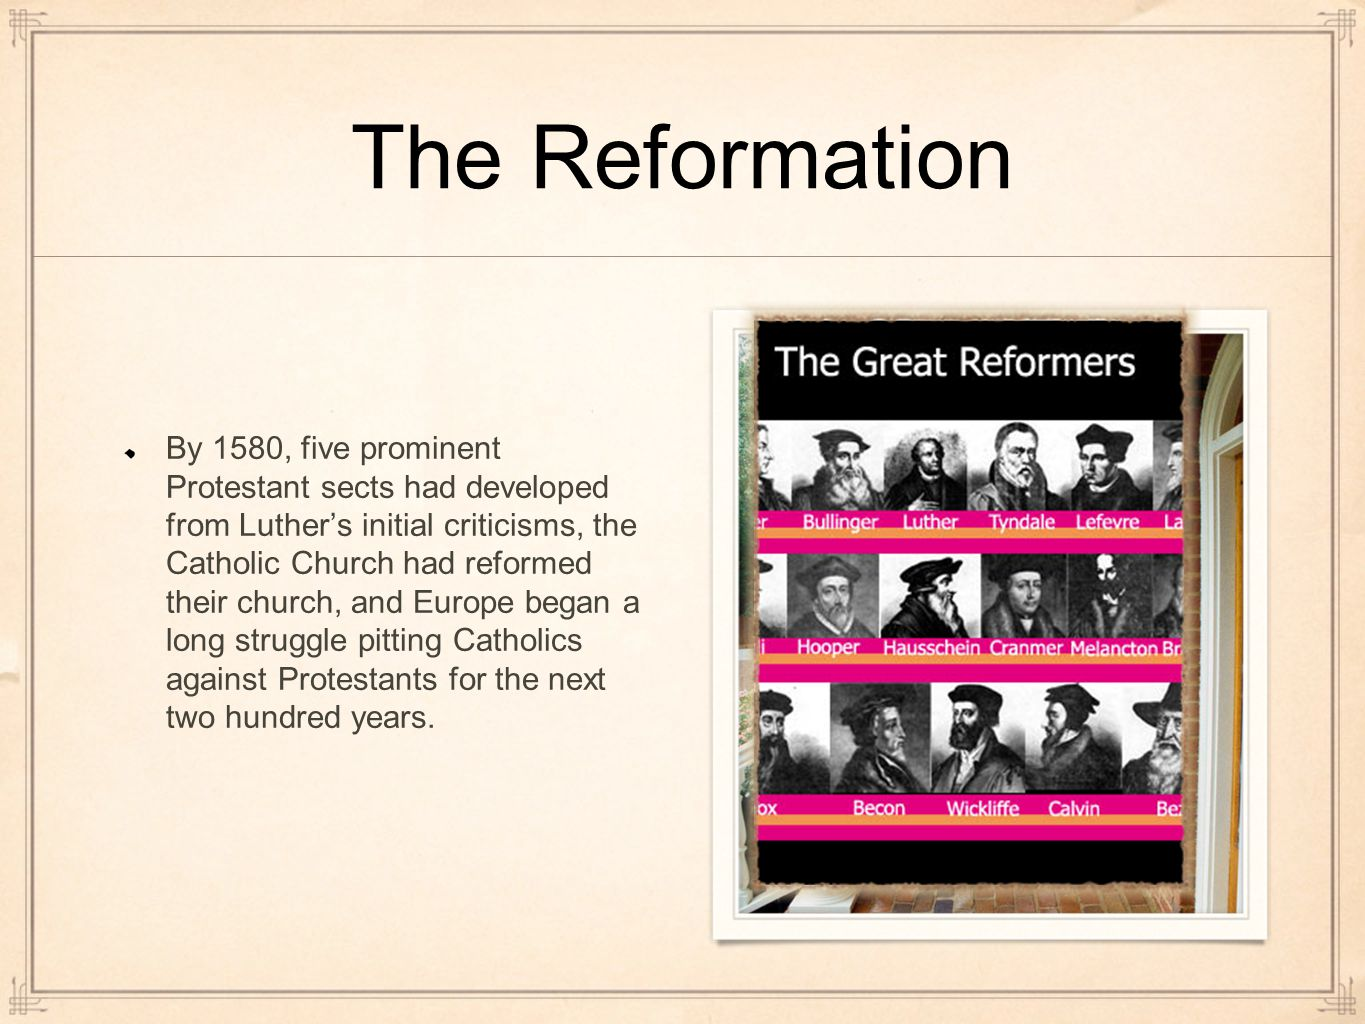 biographies of martin luther and john calvin the leaders of the protestant reformation John calvin, martin luther's successor as the preeminent protestant theologian, made a powerful impact on the fundamental doctrines of protestantism learn more about his life and career at biographycom.